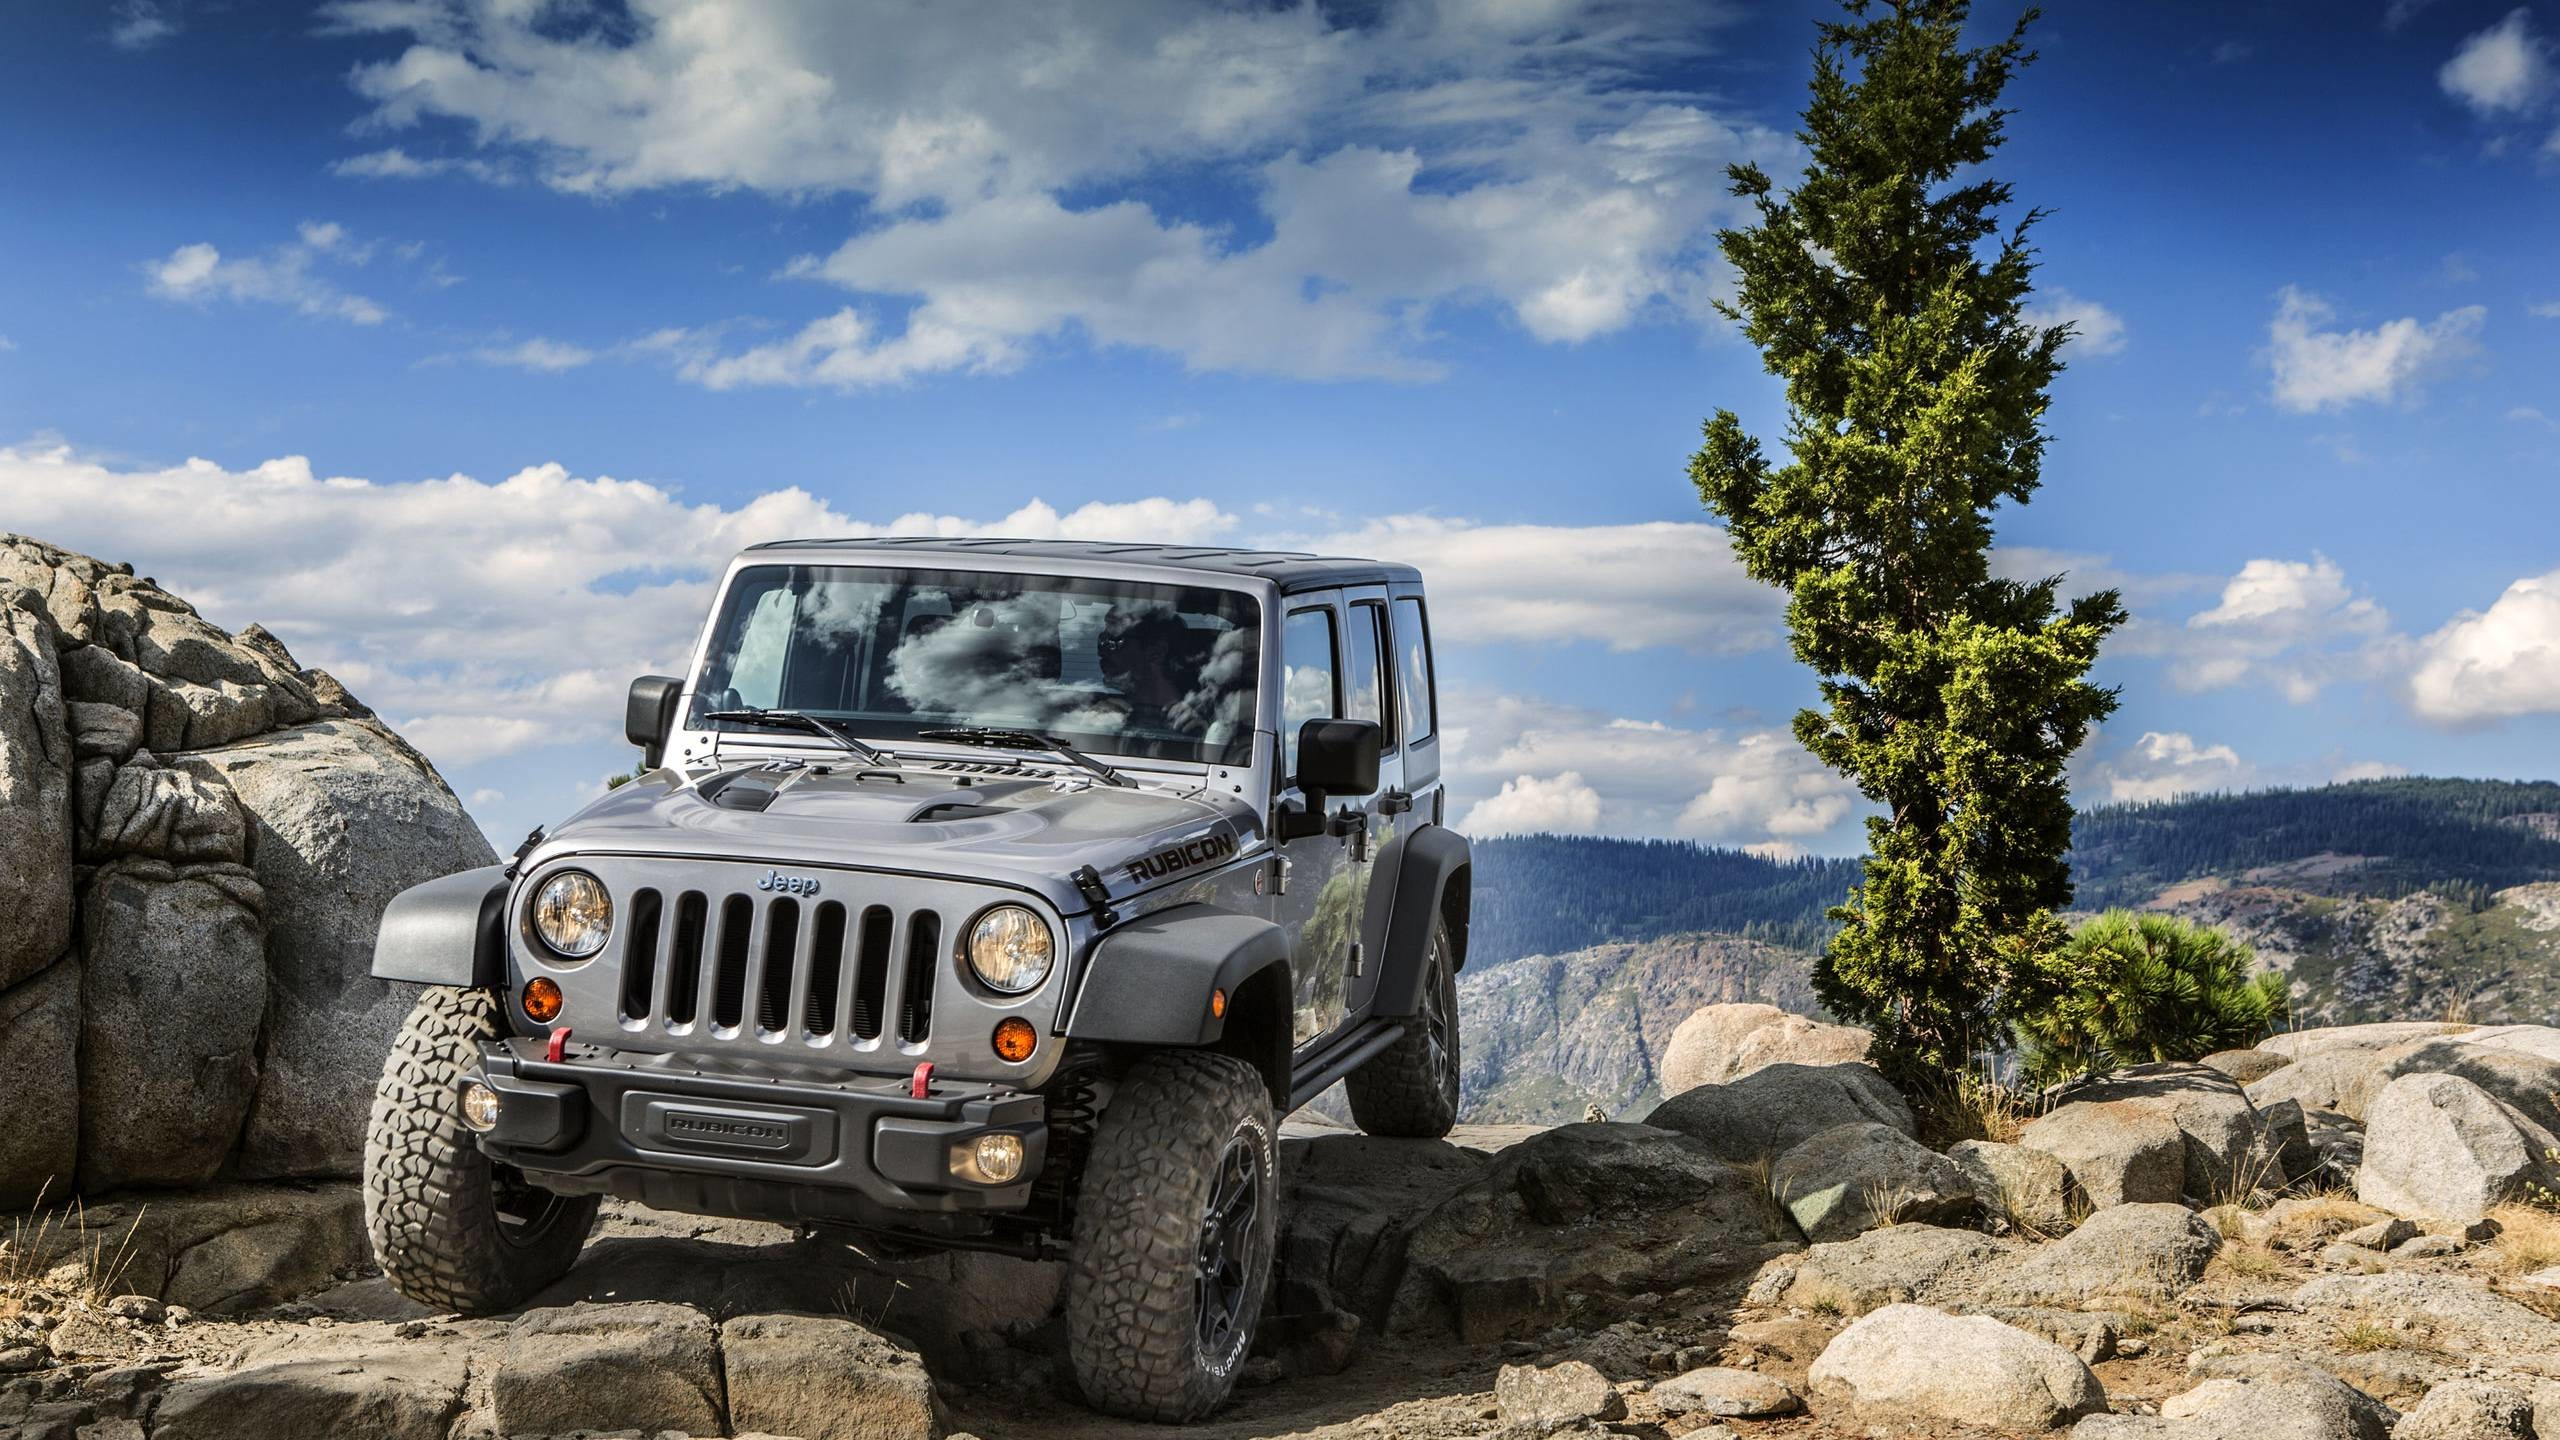 Jeep Wrangler Wallpapers Top Free Jeep Wrangler Backgrounds Wallpaperaccess